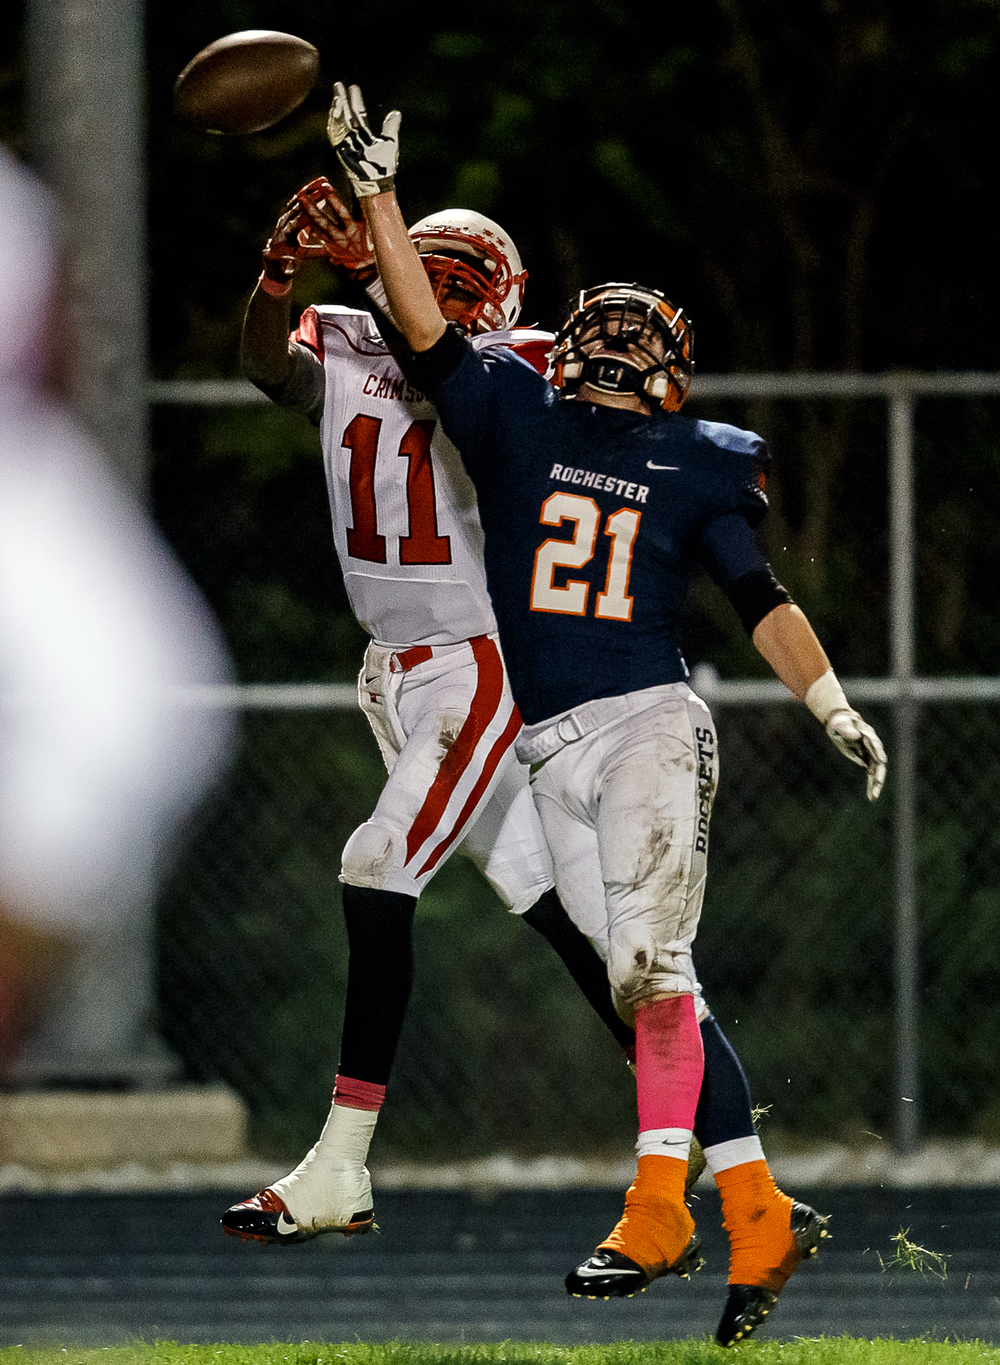 Rochester's Kenny Hedges (21) breaks up a pass intended for Jacksonville's James White (11) during the first half at Rocket Booster Field, Friday, Oct. 10, 2014, in Rochester, Ill. Justin L. Fowler/The State Journal-Register